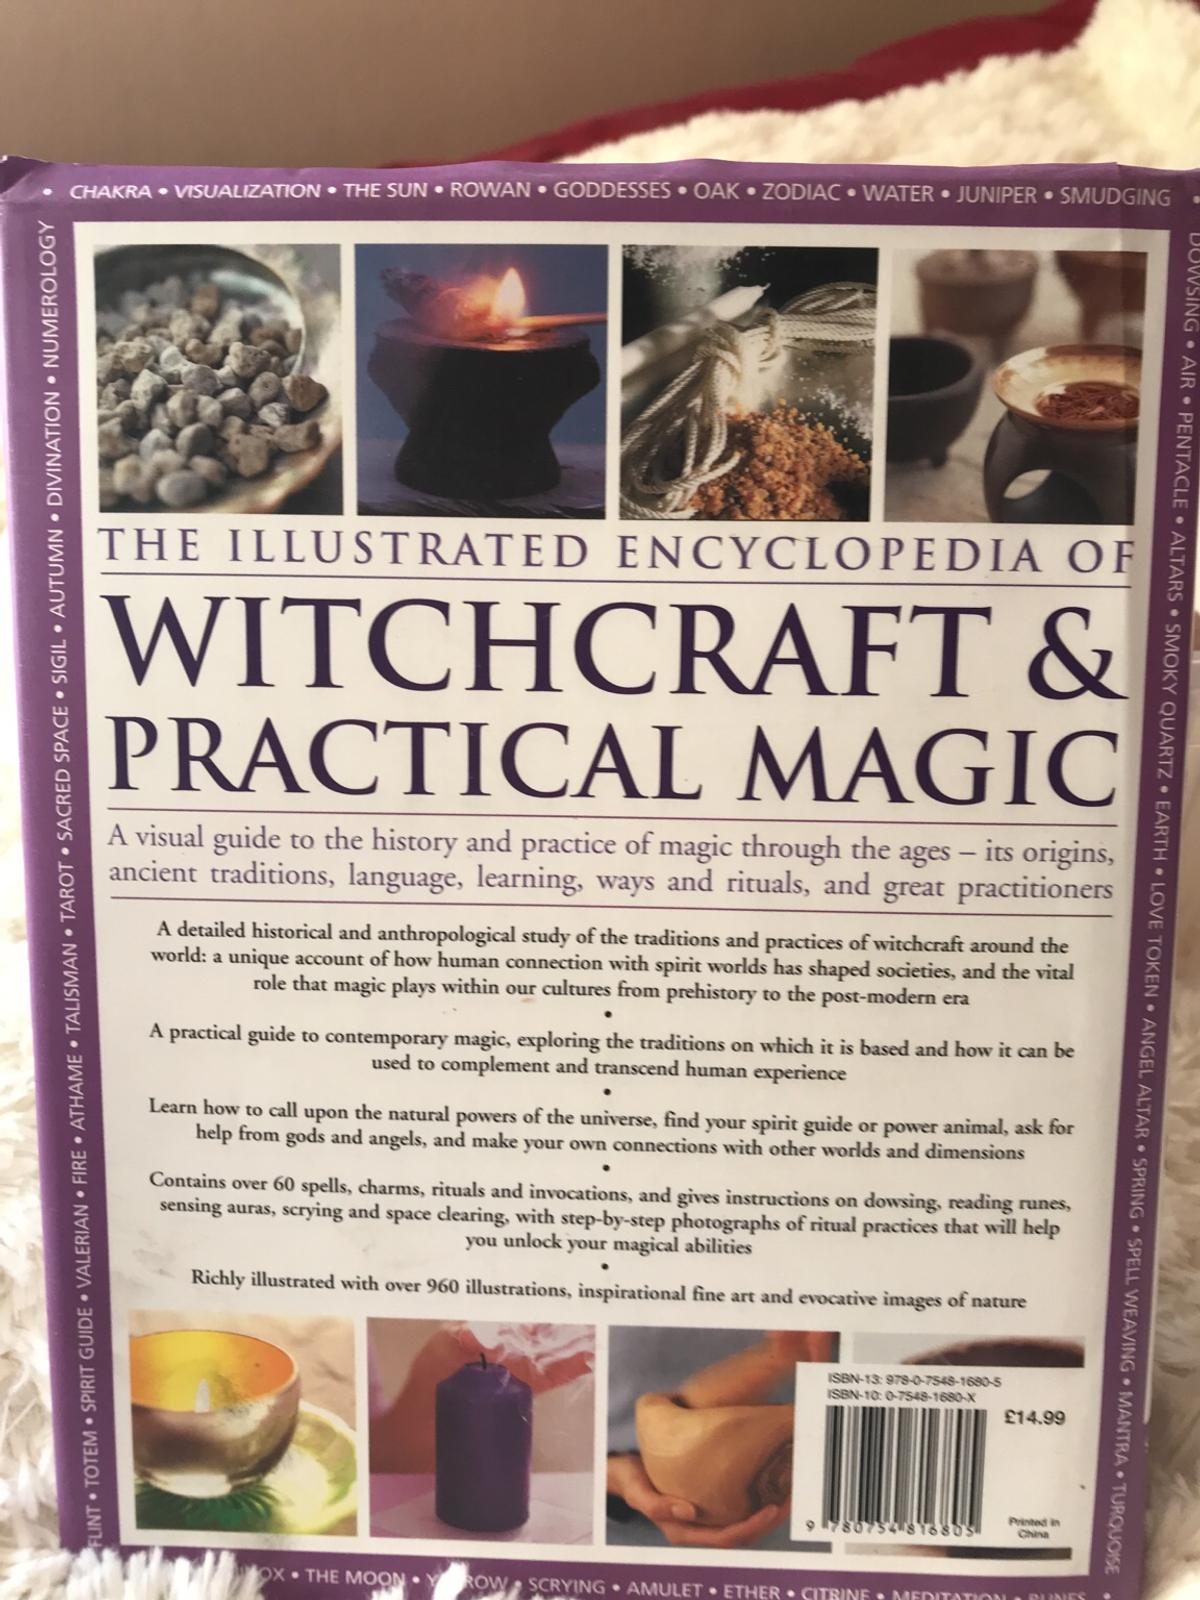 Witchcraft and practical magic book